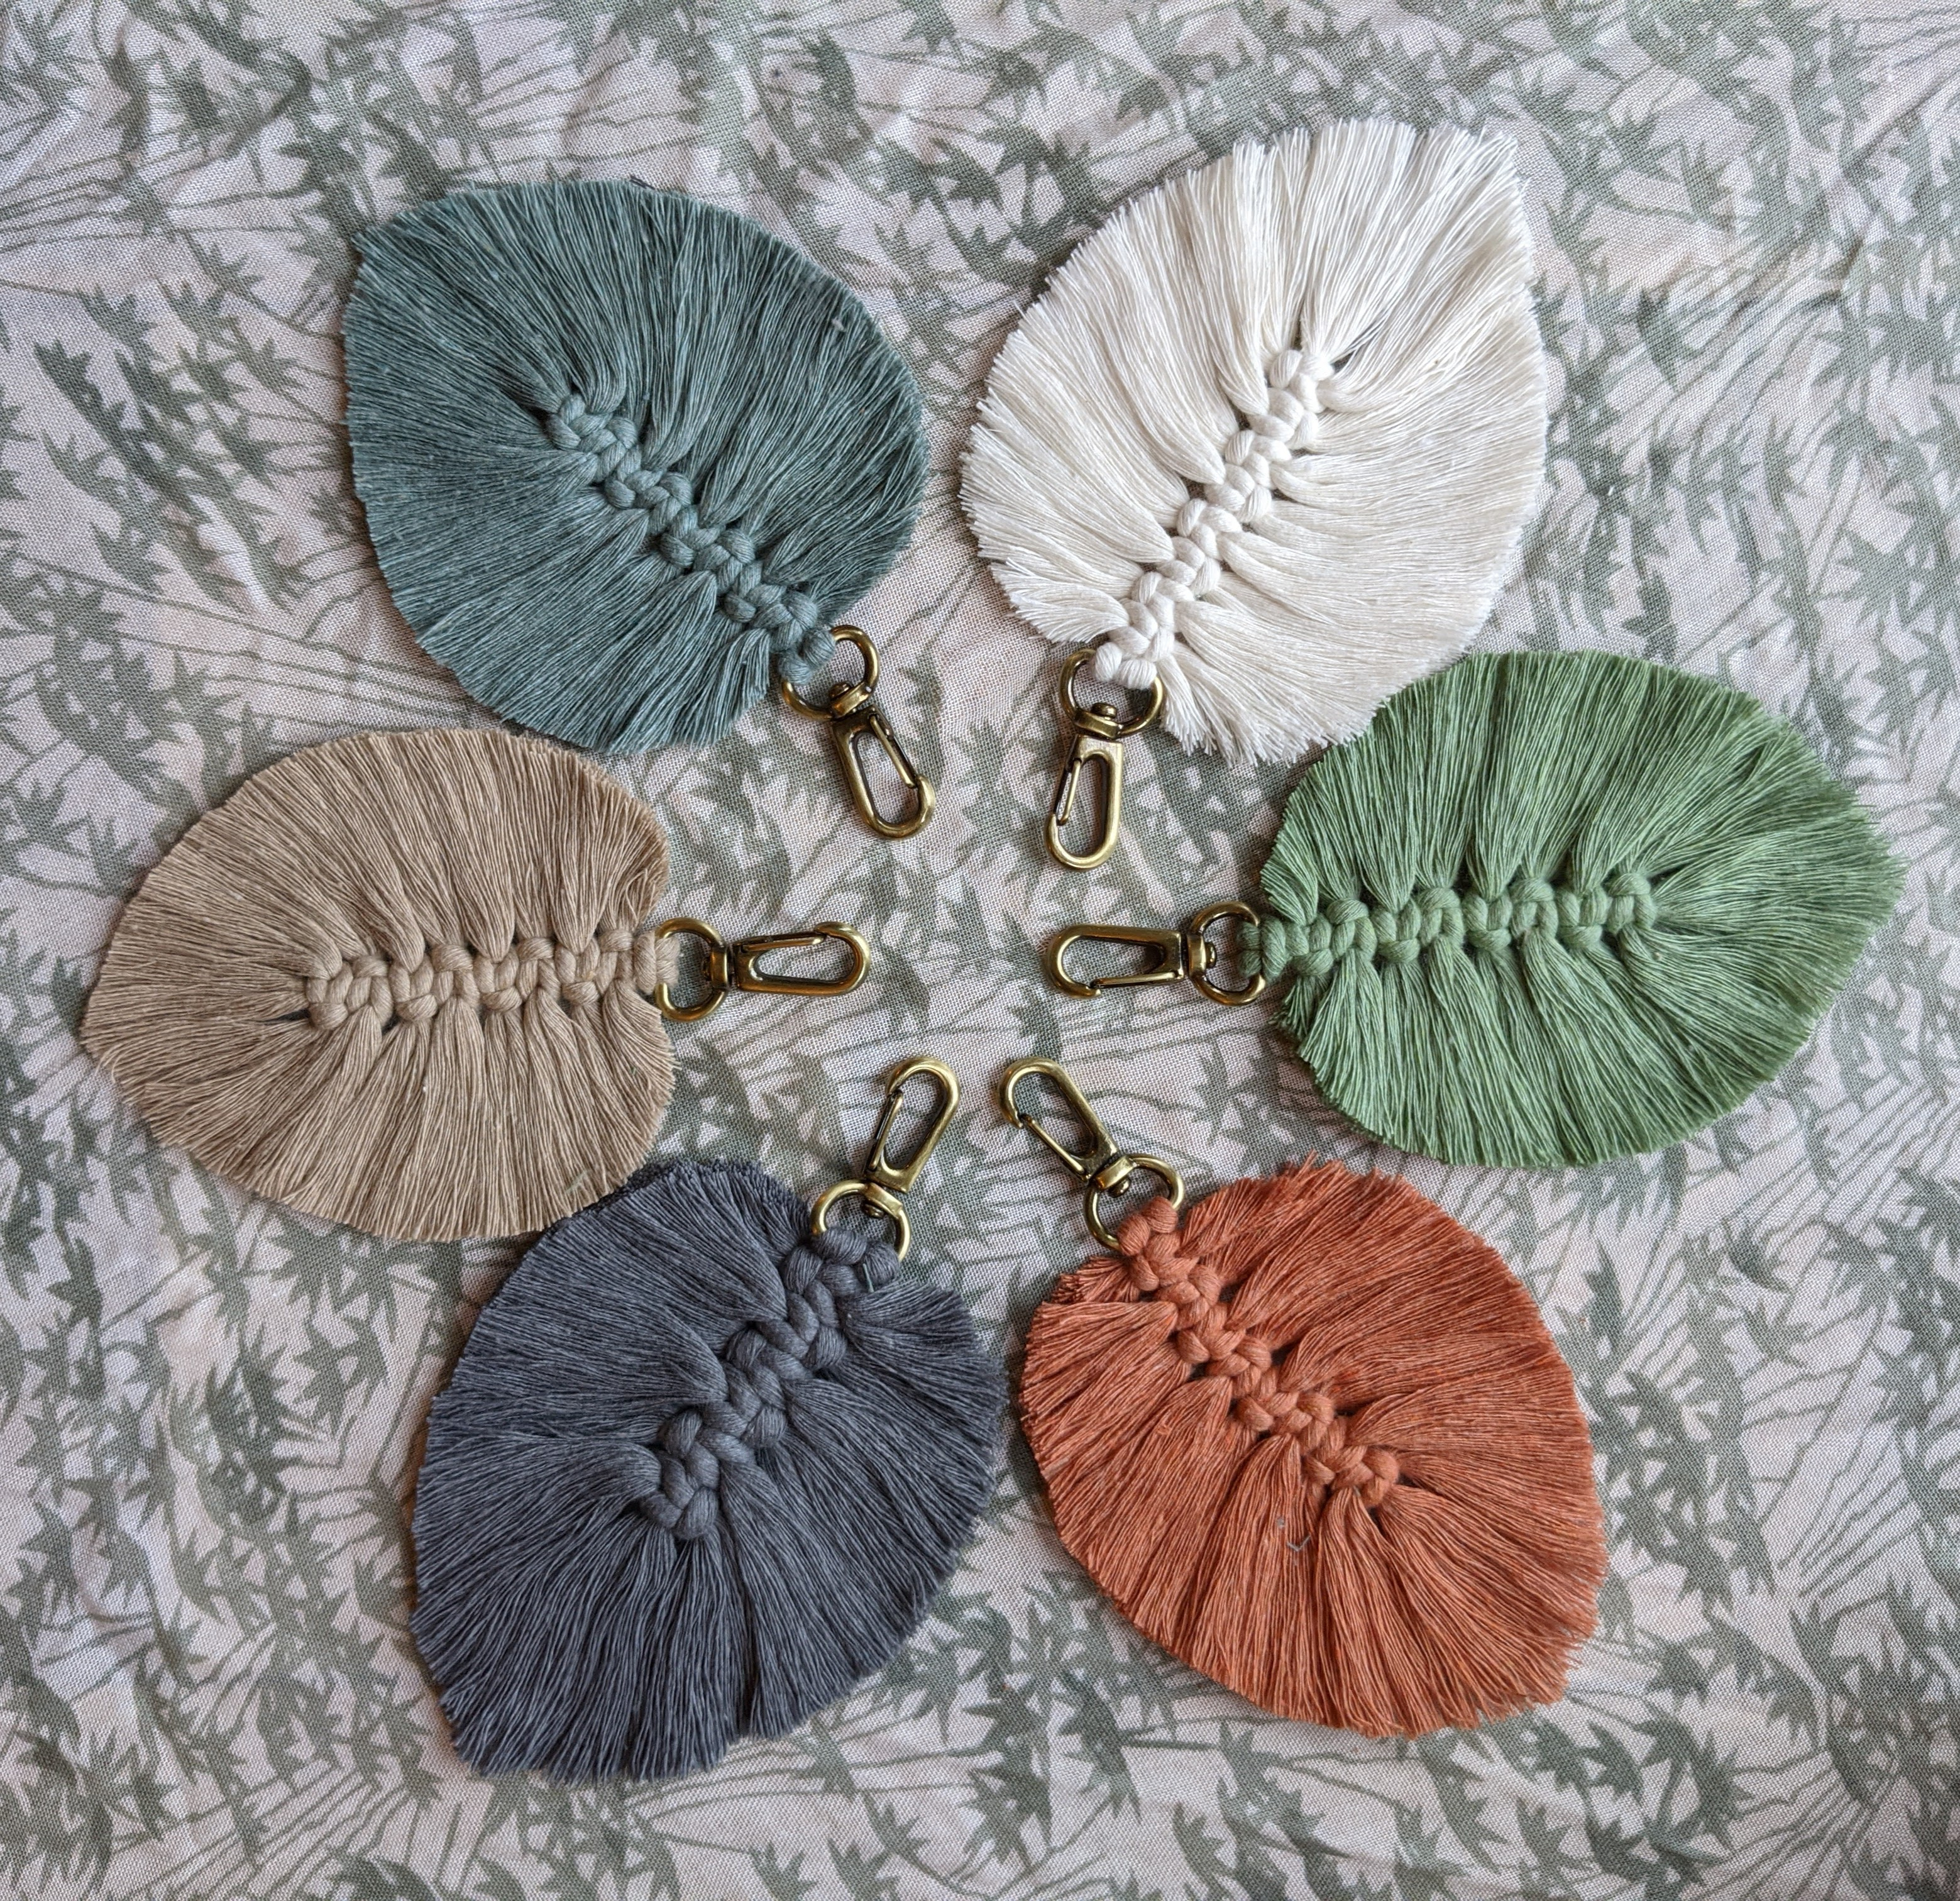 A collection of fabric key-chains positioned in a circle. Each key chain is in the shape of a leaf.